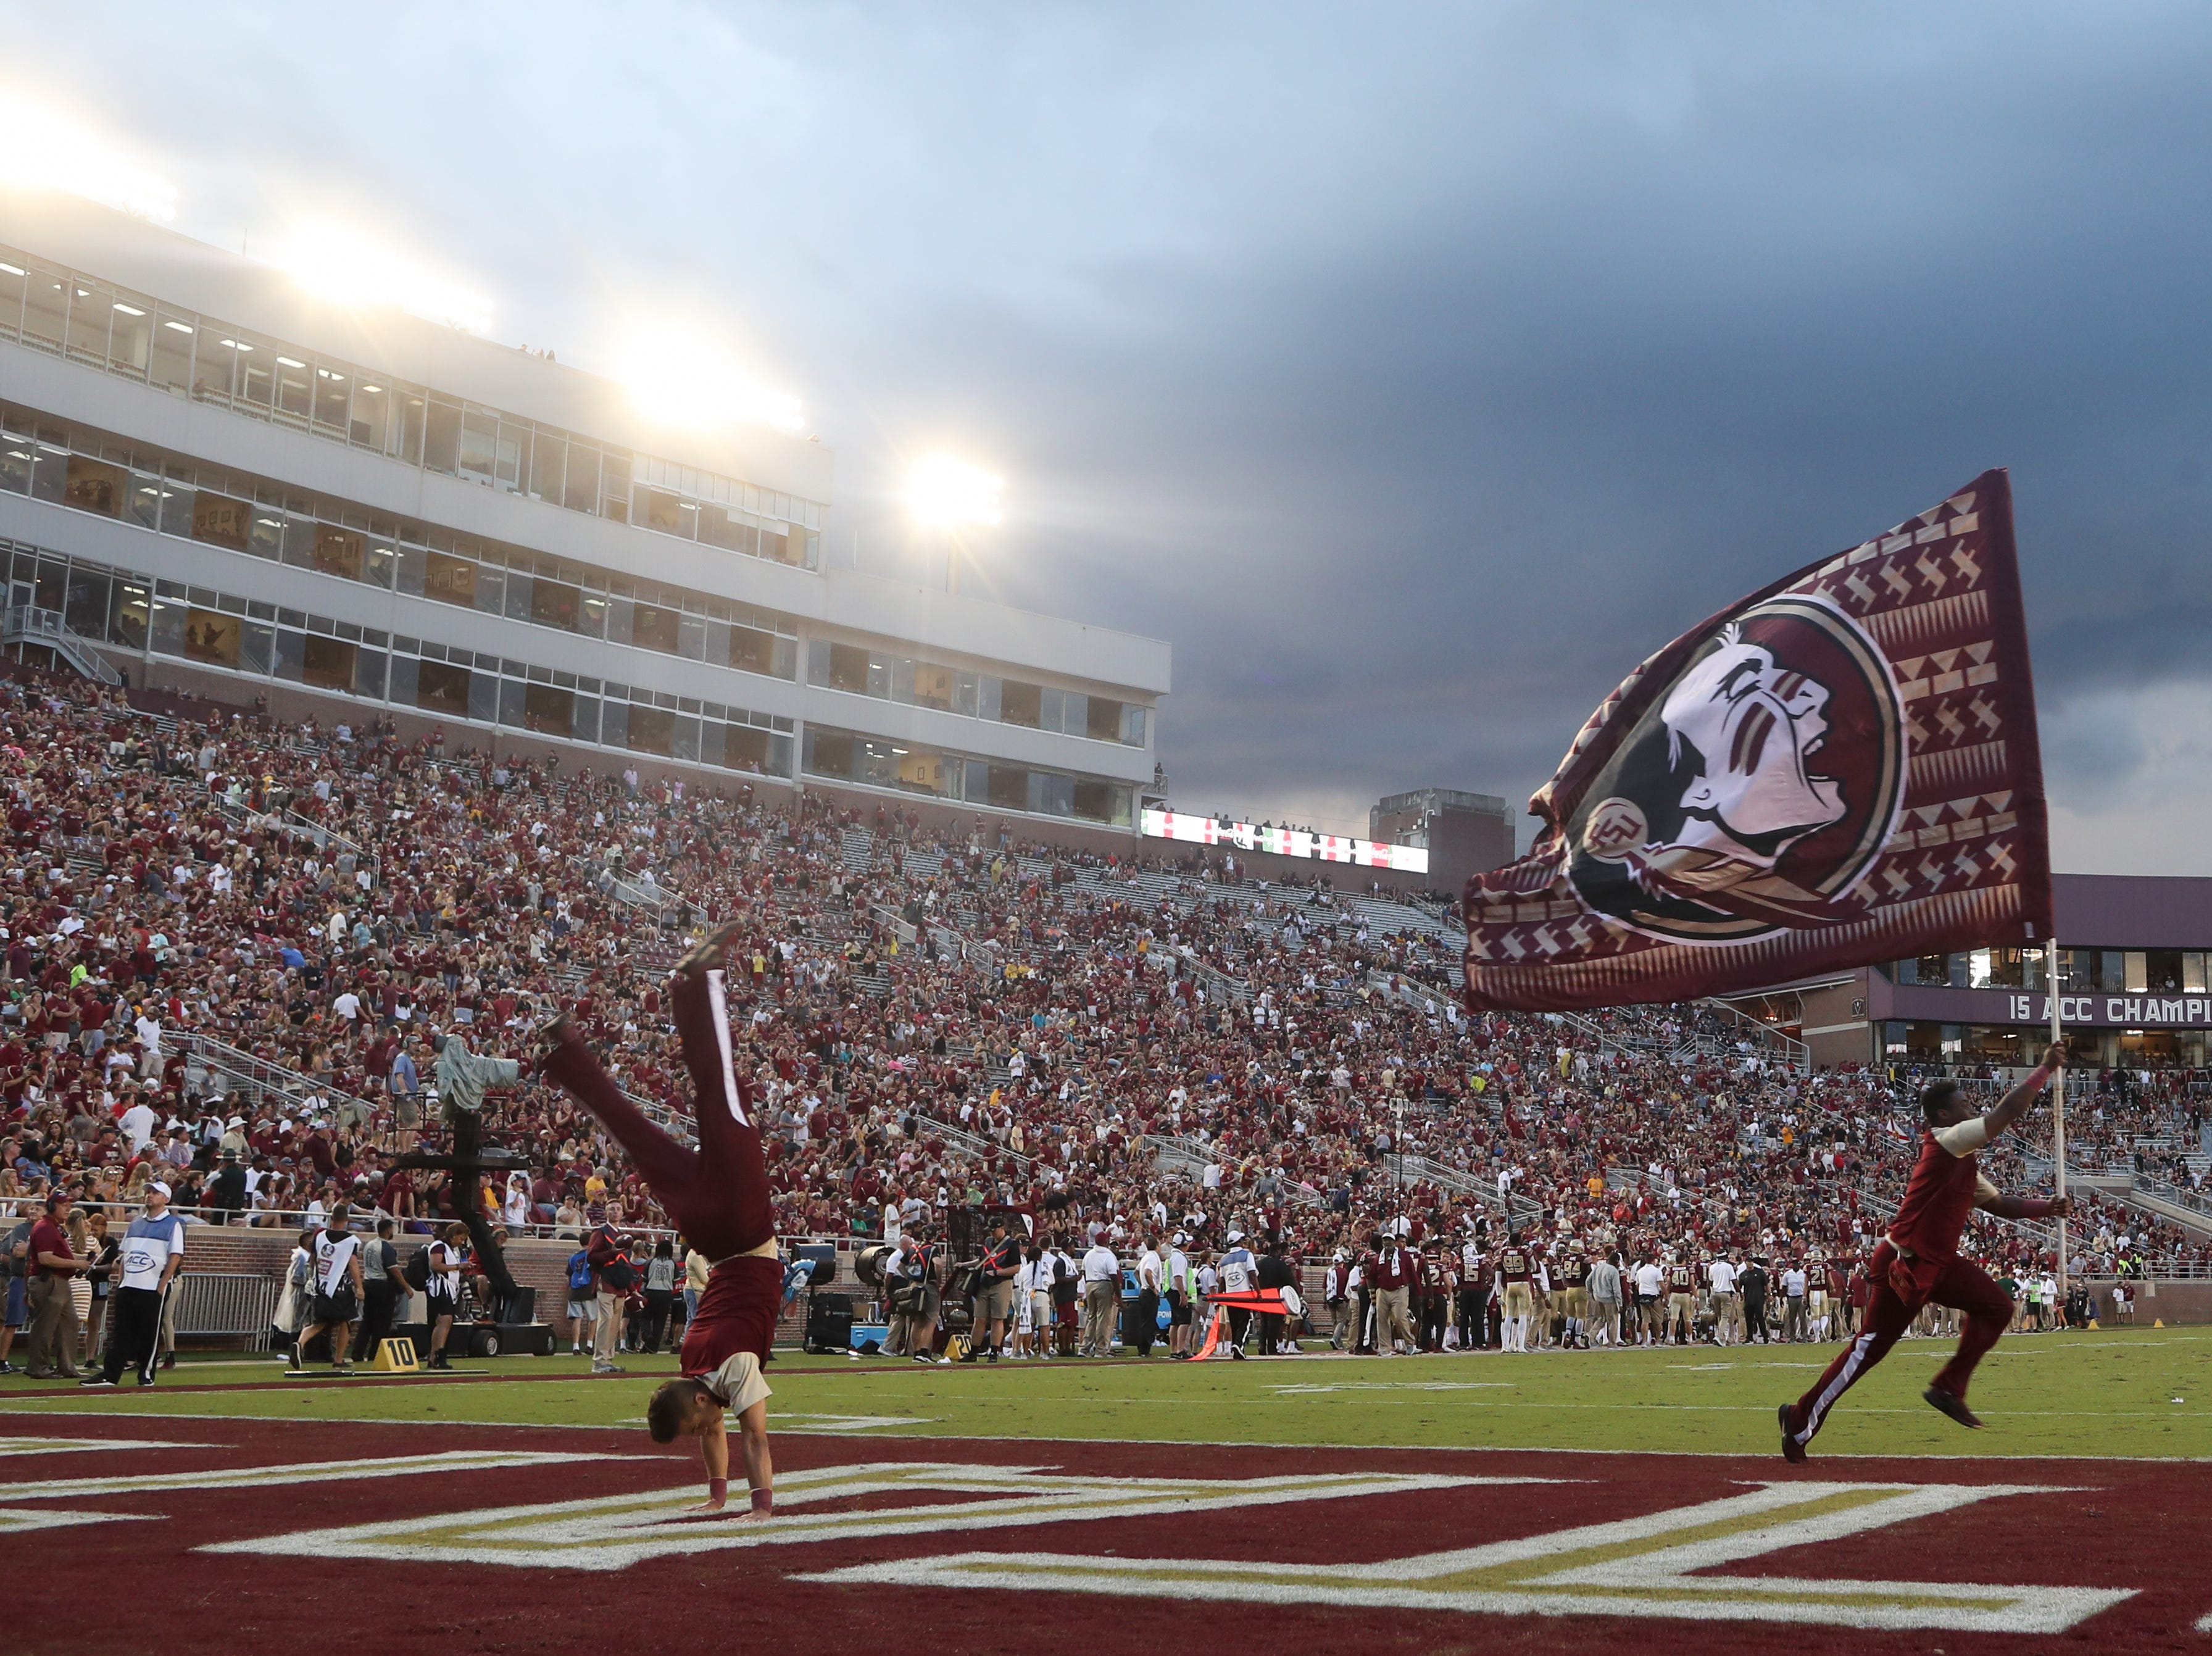 Florida State University celebrates a touchdown during FSU's homecoming game against Wake Forest at Doak S. Campbell Stadium Saturday, Oct. 20, 2018.